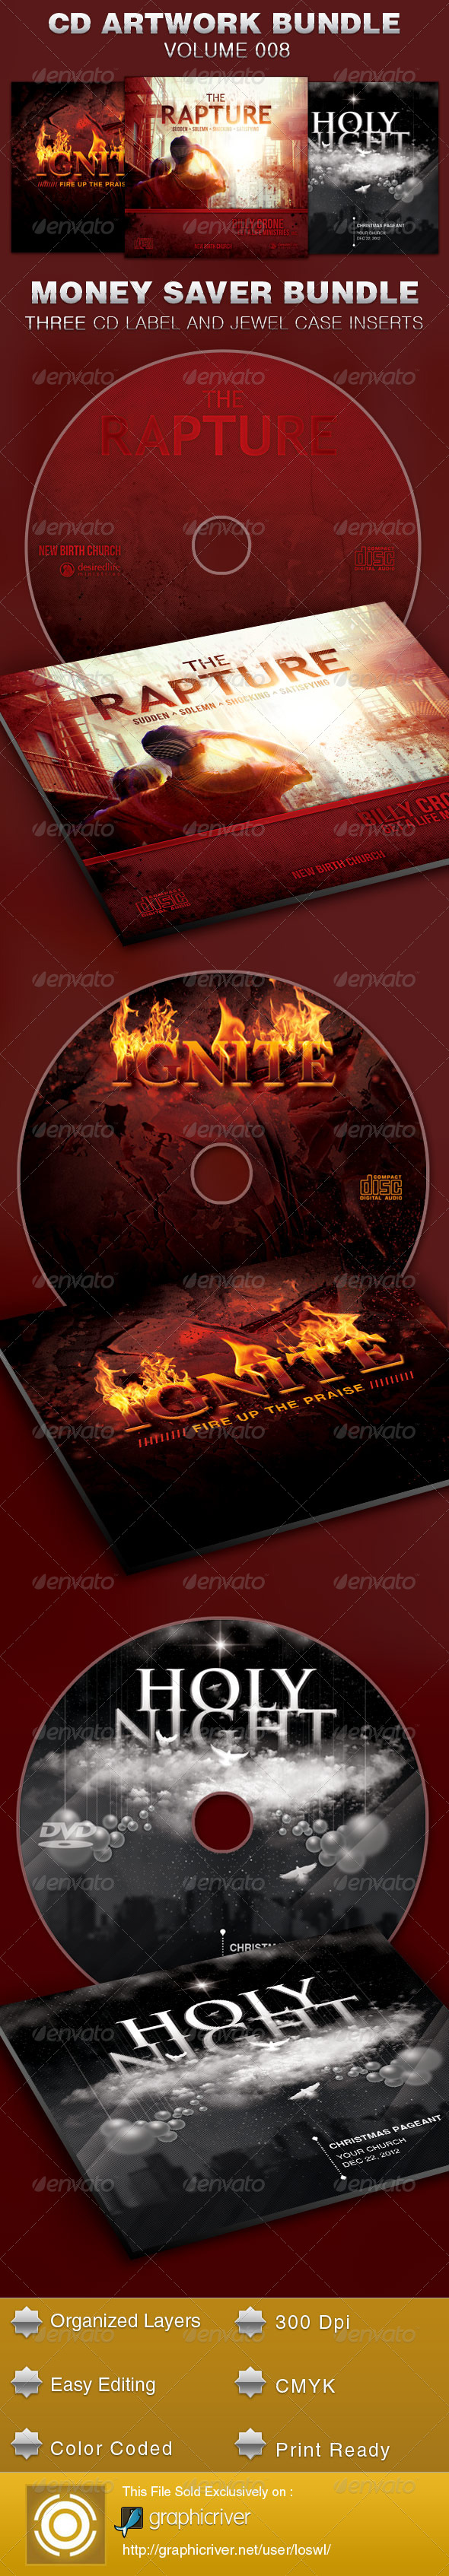 CD Cover Artwork Template Bundle-Vol 008 - CD & DVD Artwork Print Templates